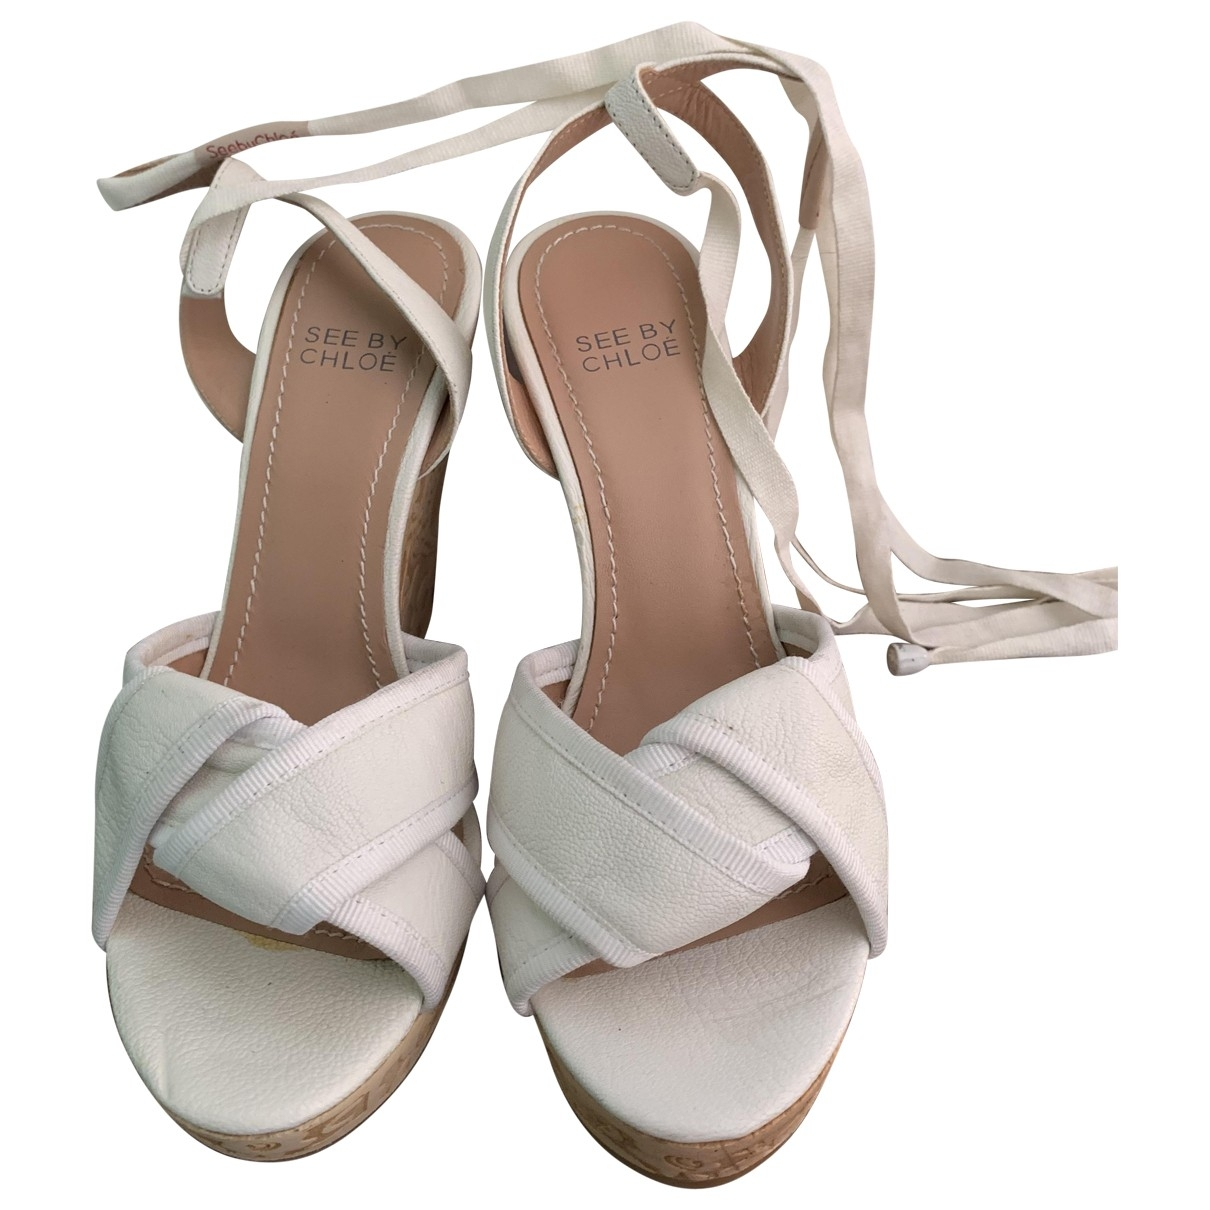 See By Chloé \N White Leather Sandals for Women 37 EU